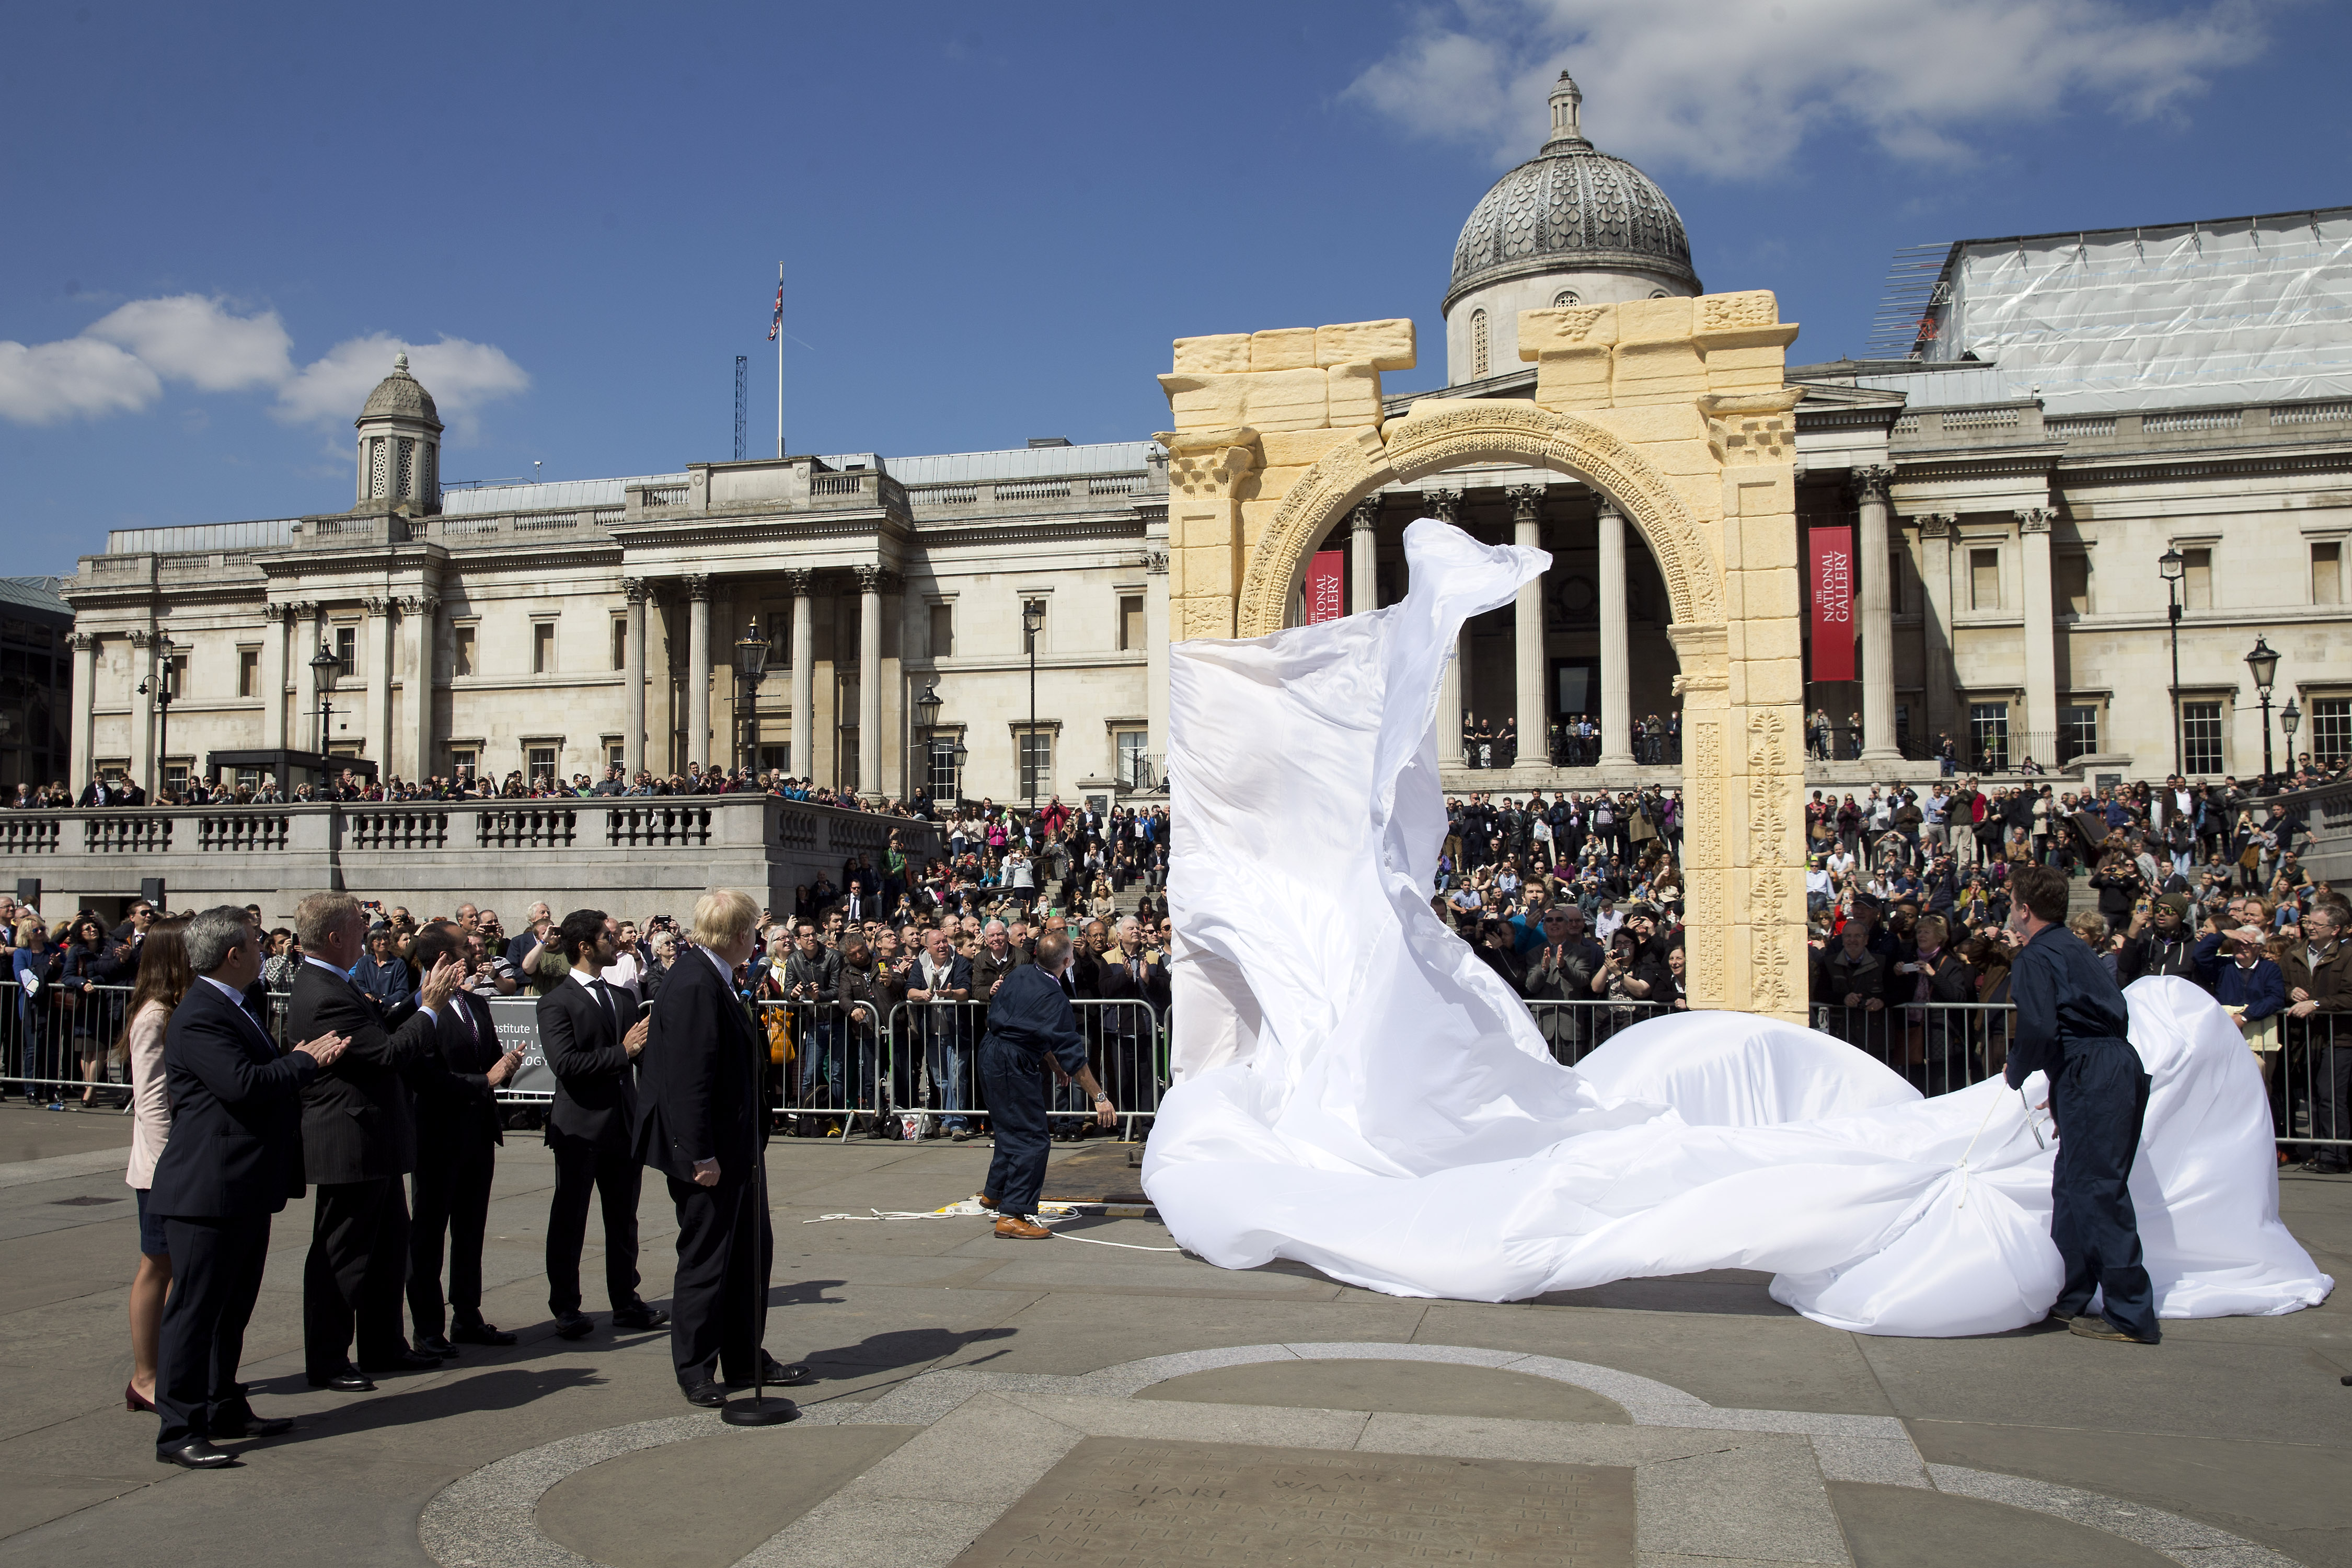 Mayor of London Boris Johnson (L) watches during the unveiling of a replica of Palmyra's Arch of Triumph in Trafalgar Square, central London, on April 19, 2016. The original arch was destroyed by the Islamic State (IS) and the replica has been crafted using the latest 3D printing and carving technologies by the Institute for Digital Archaeology.